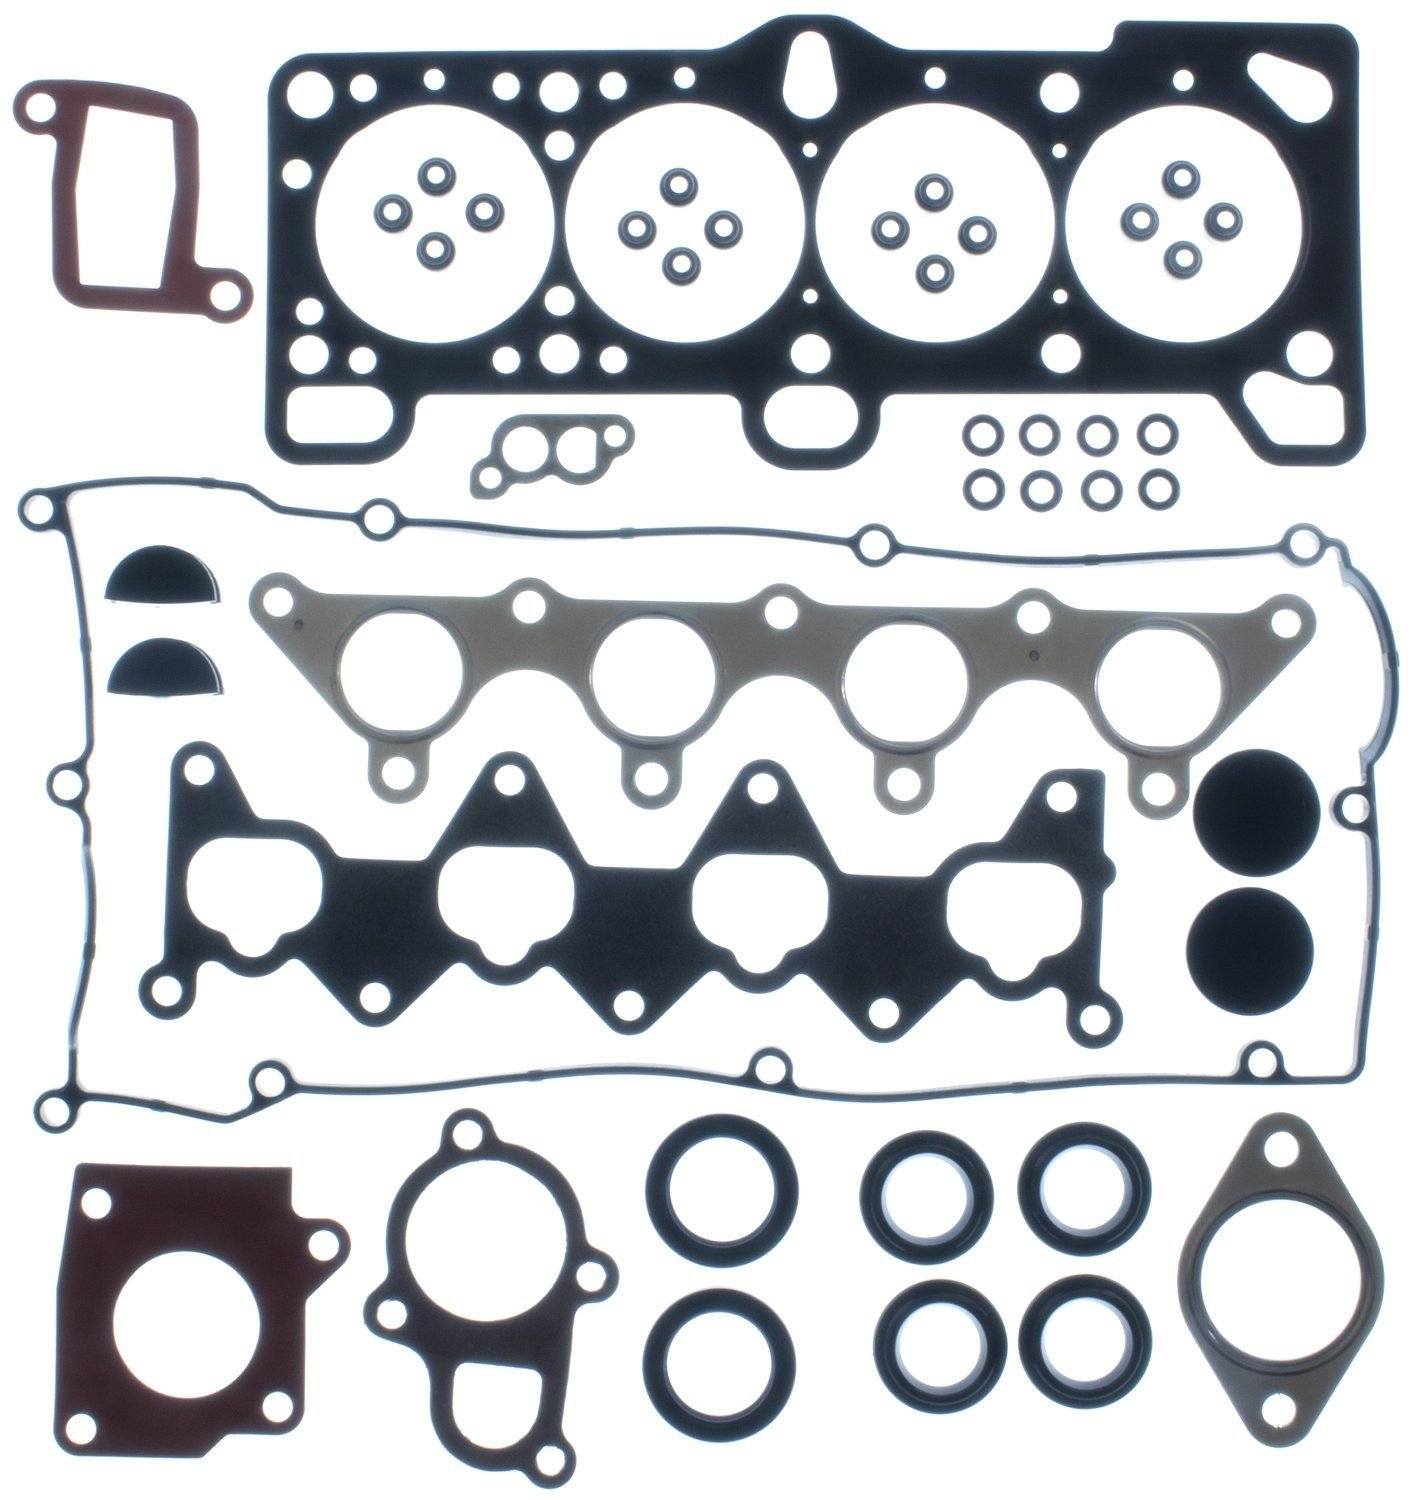 Hyundai Accent Engine Cylinder Head Gasket Set Replacement Apex Dj 2001 4 Cyl 16l Victor Gaskets Hs54484 Bolts Not Included